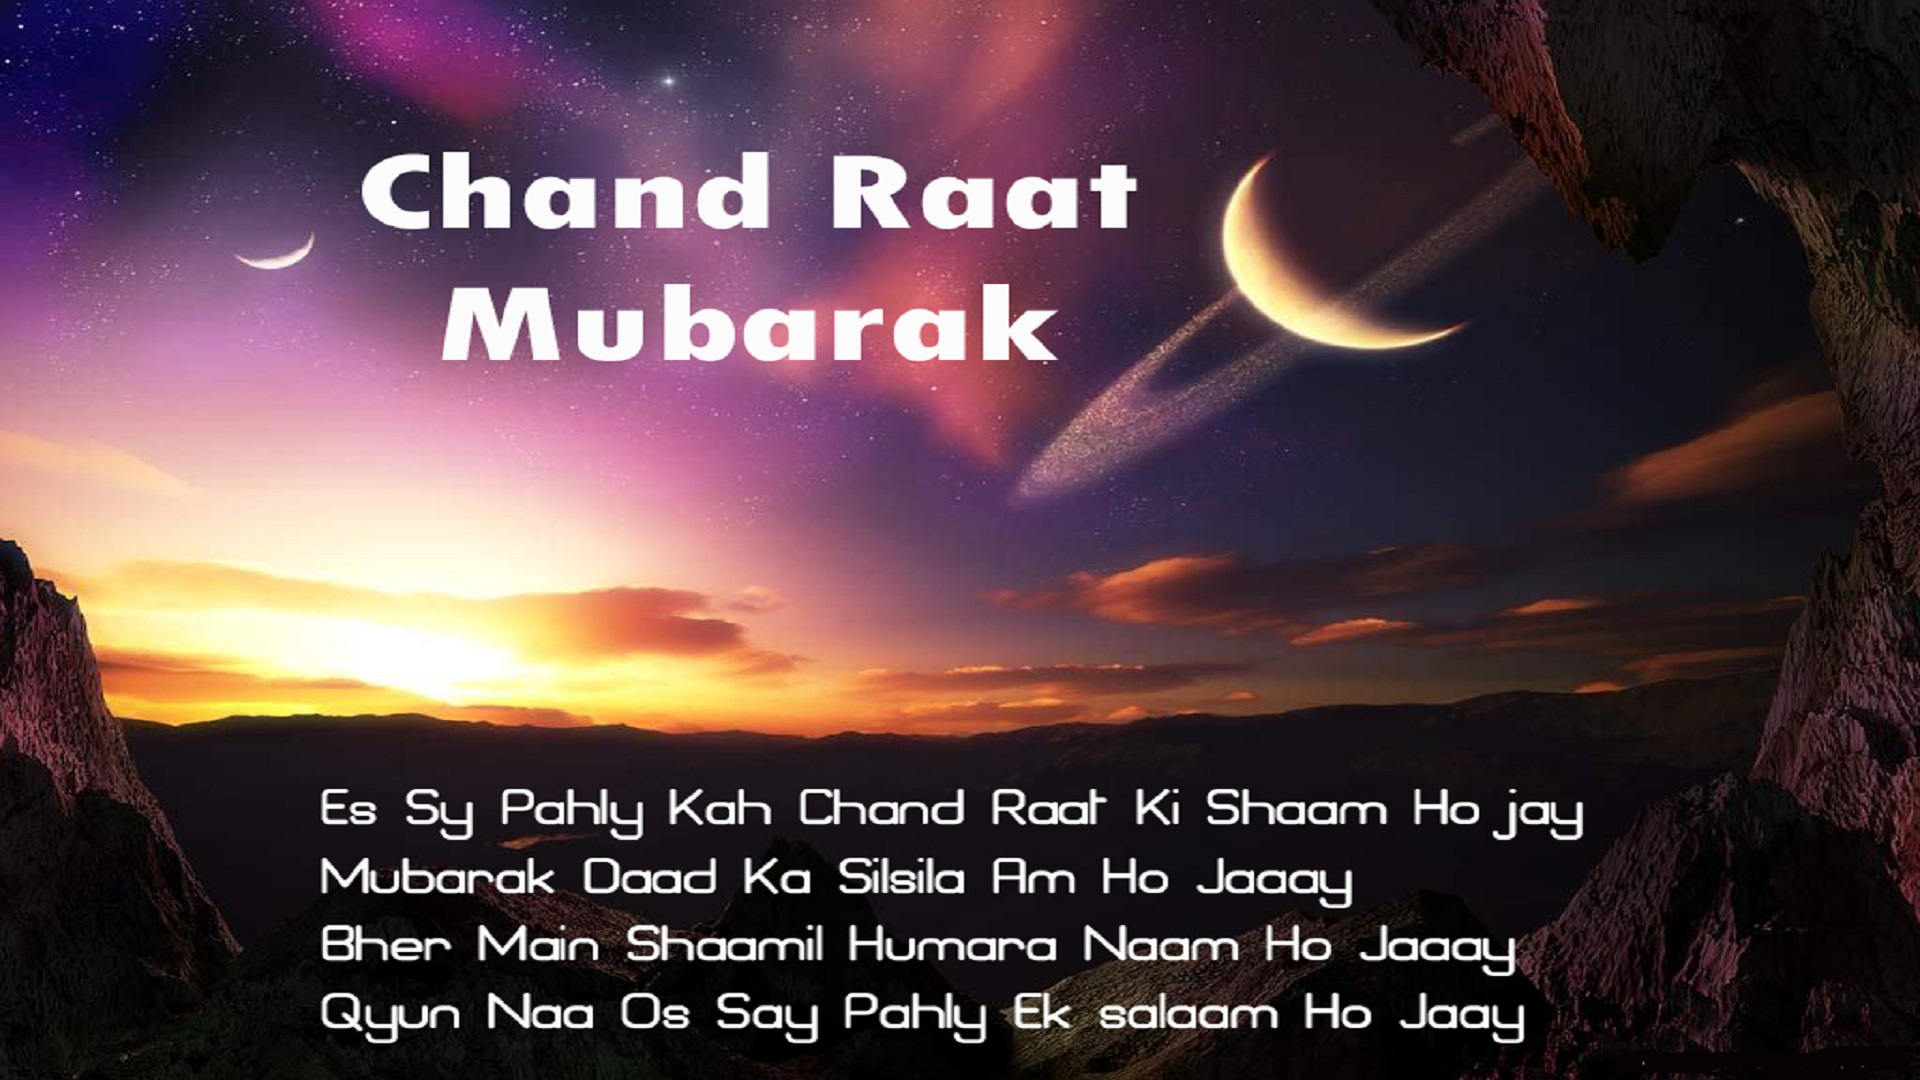 Chand Raat Mubarak Wallpapers 5